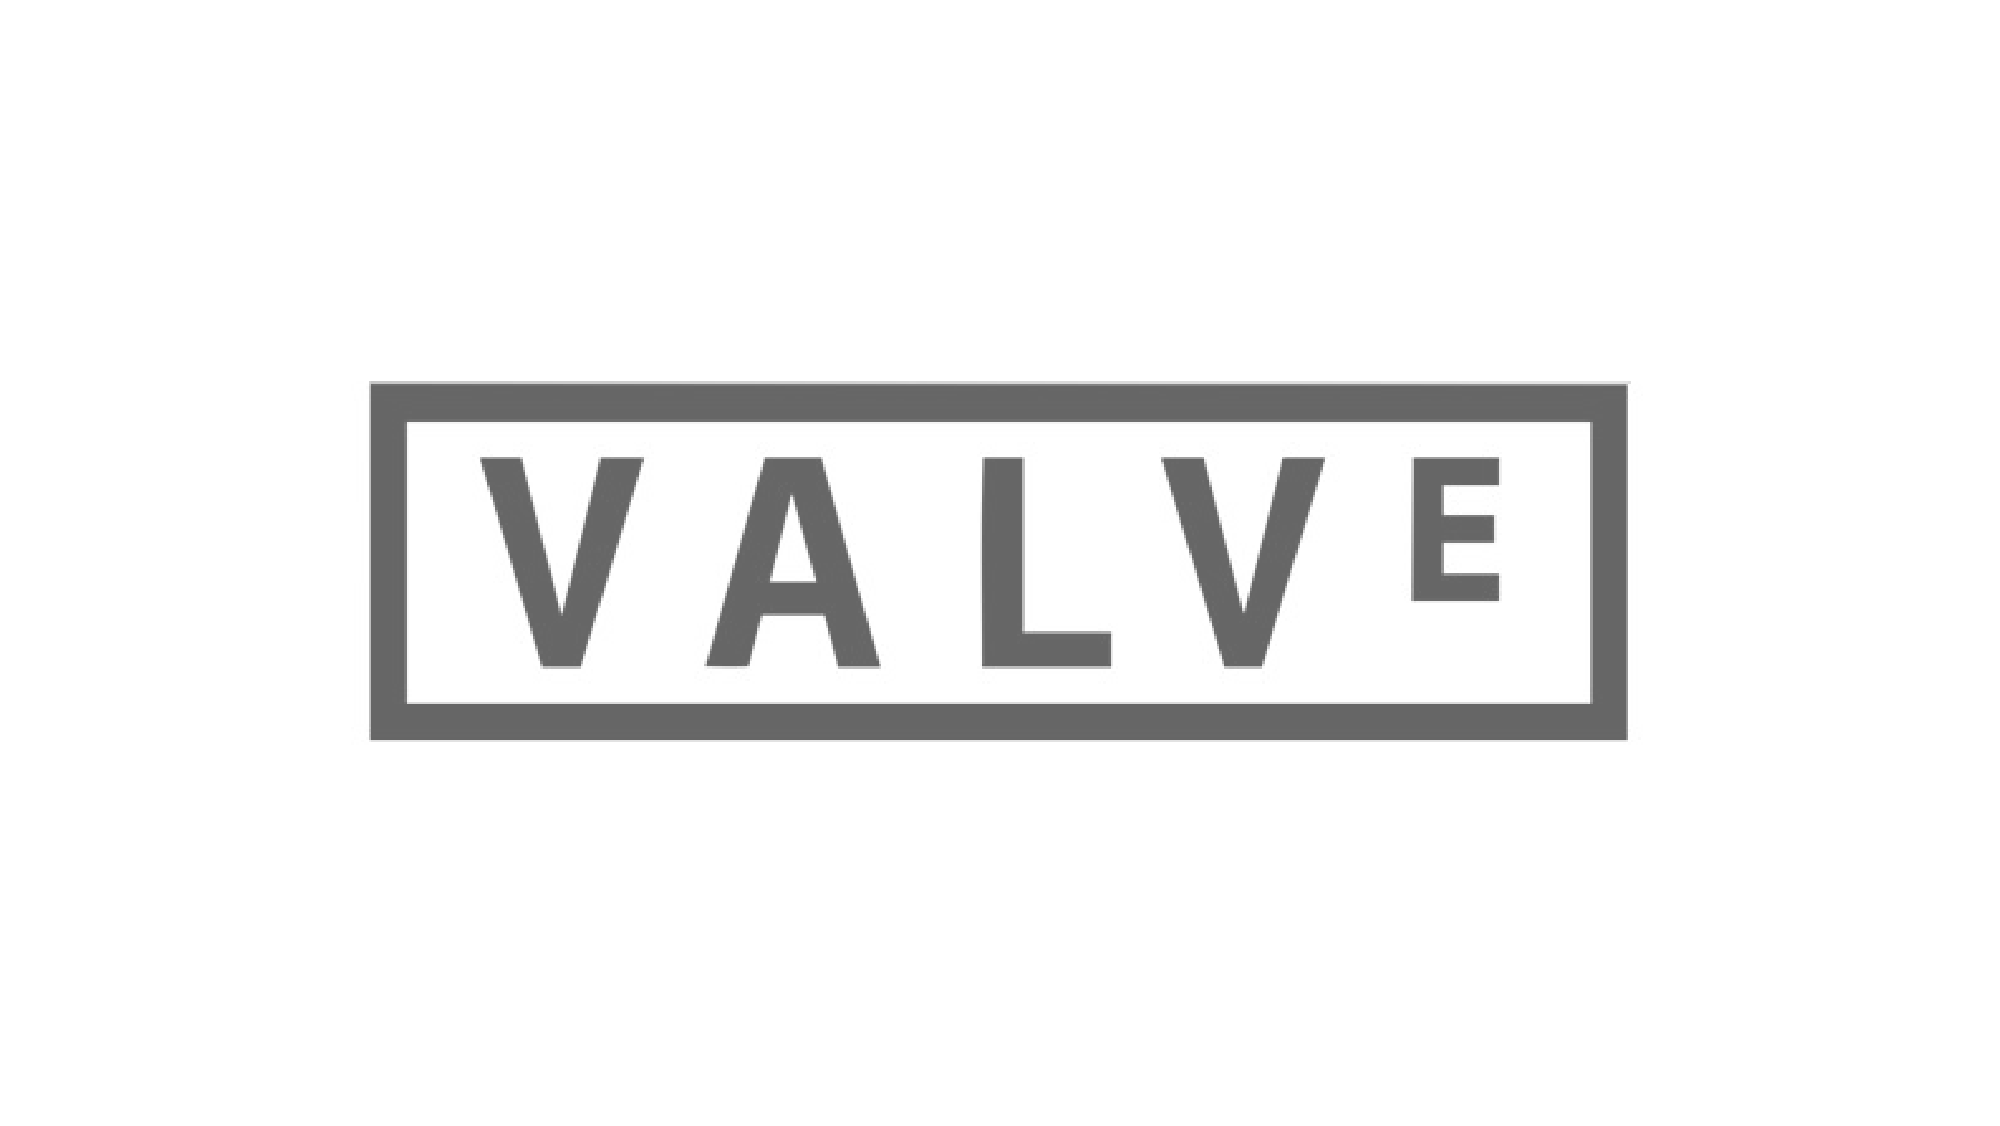 8.valve.png